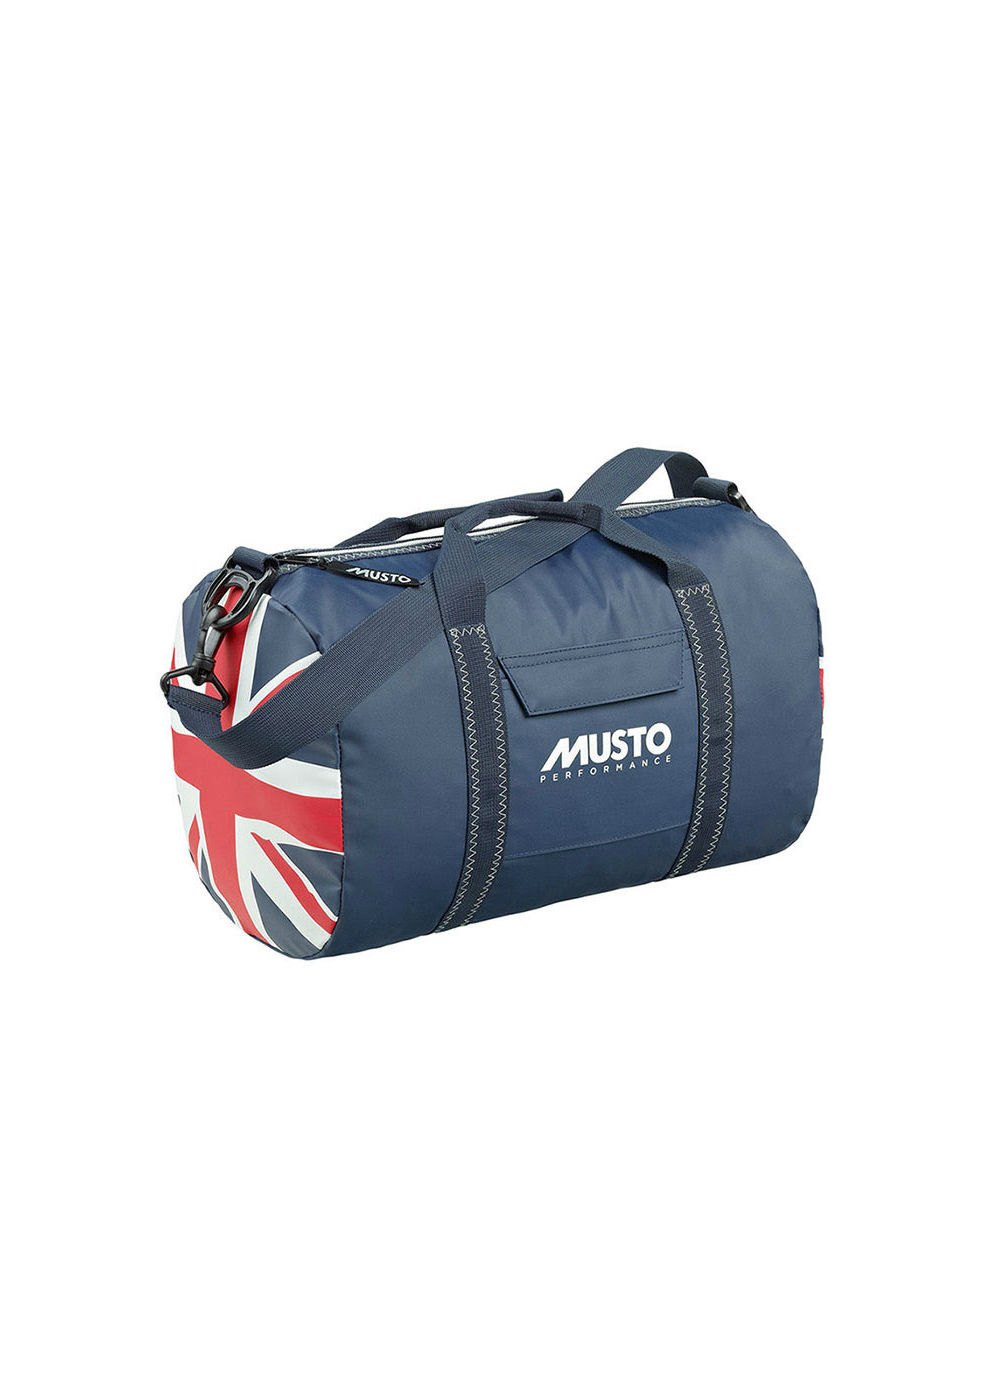 Musto Genoa Carry All GBR